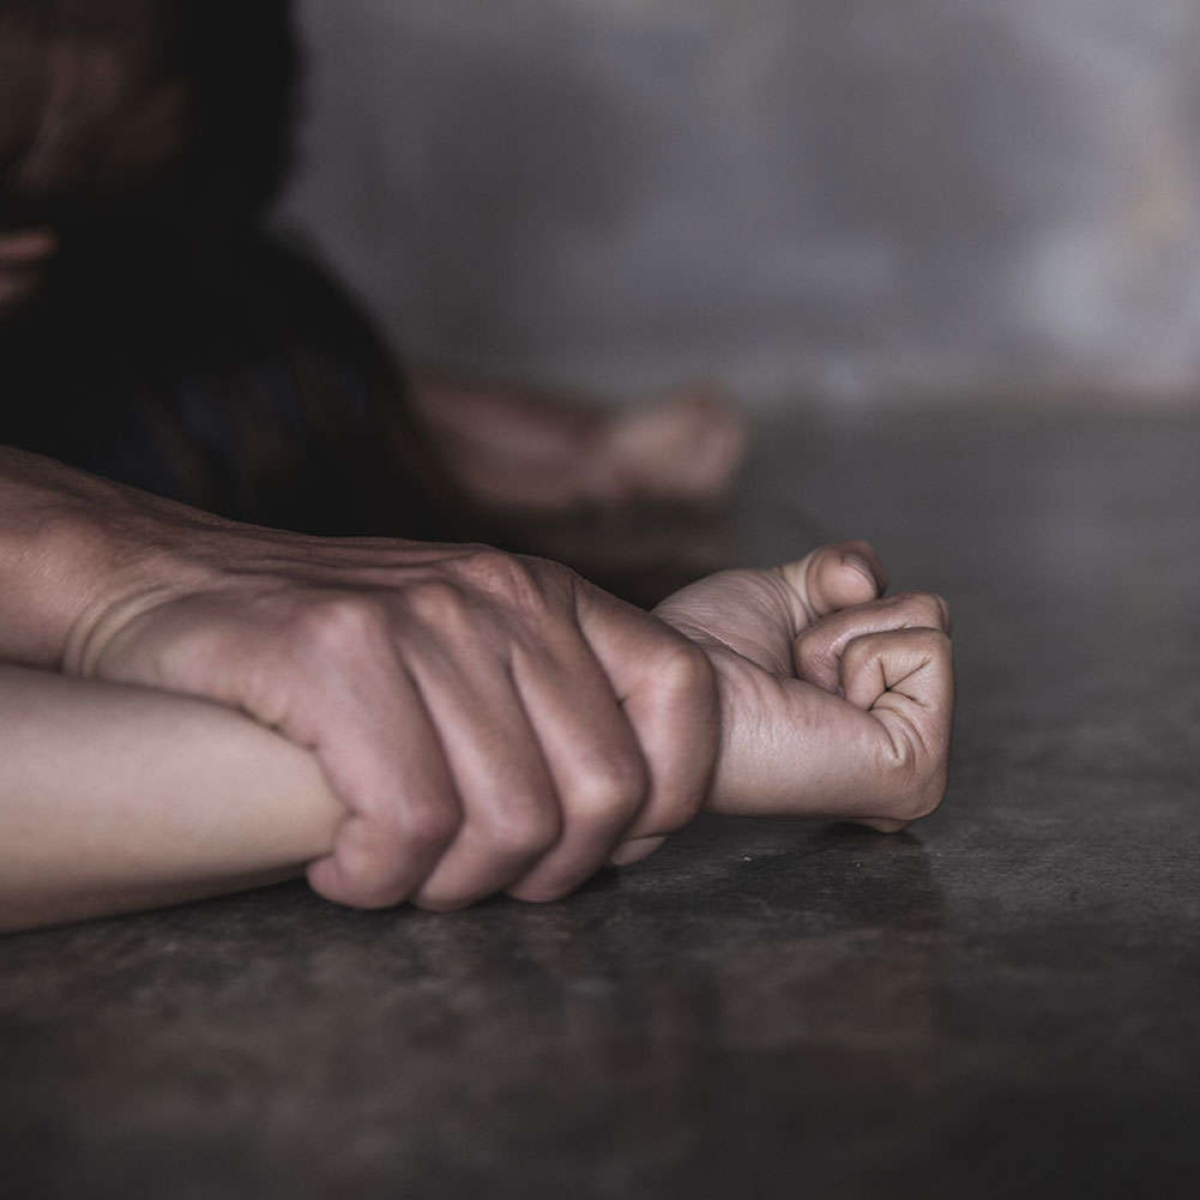 Bhopal: 20-year-old raped by man who befriended her